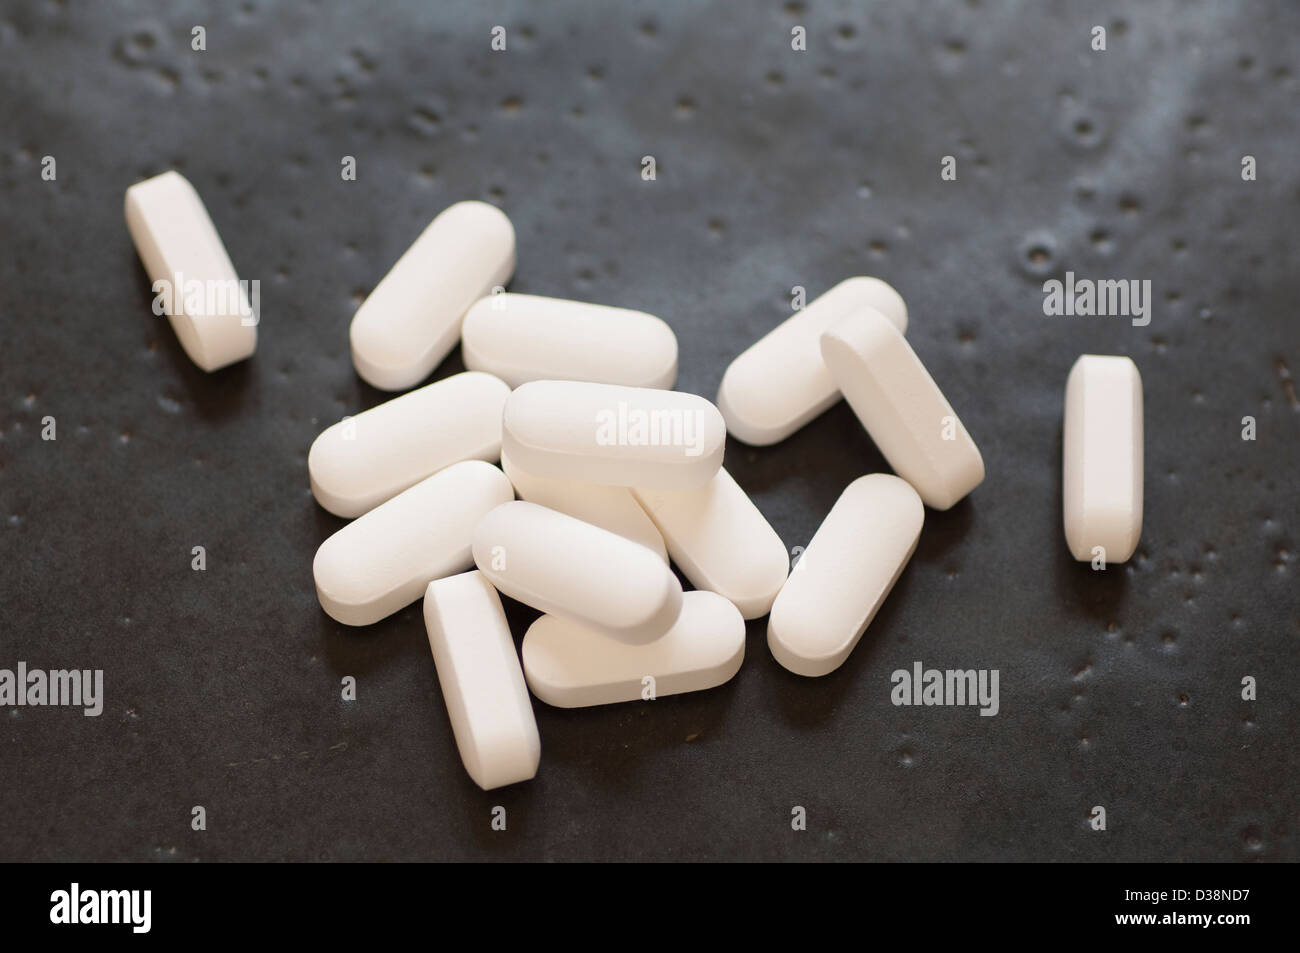 Close-up view of Glutamine tablets dietary supplement - Stock Image